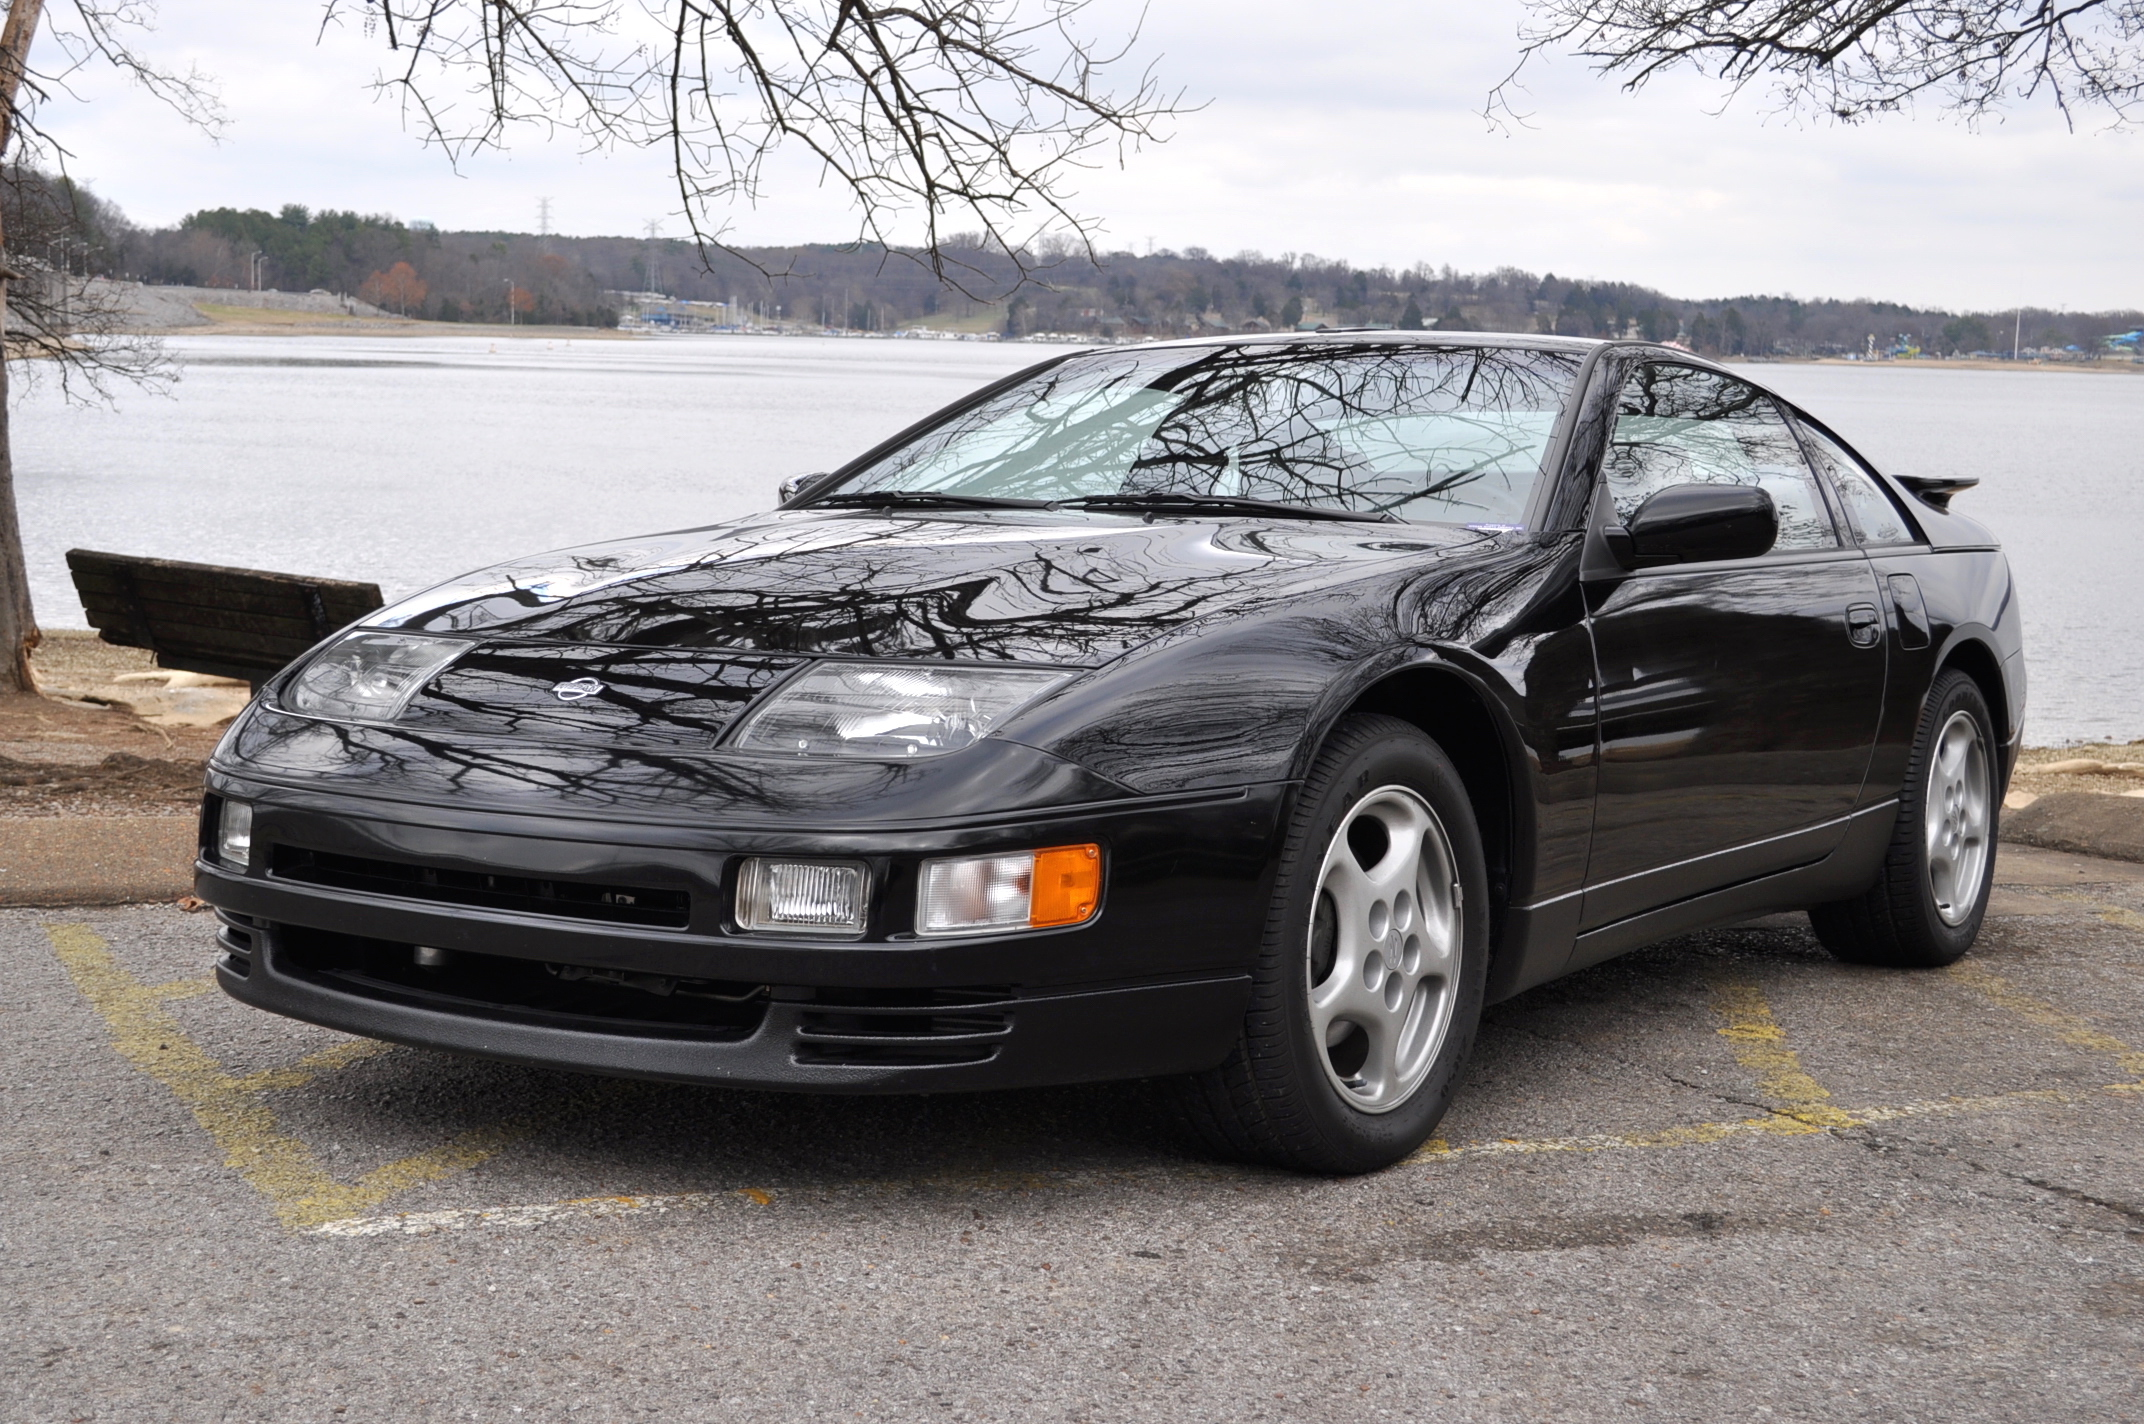 time machine test drive 1996 300zx twin turbo. Black Bedroom Furniture Sets. Home Design Ideas